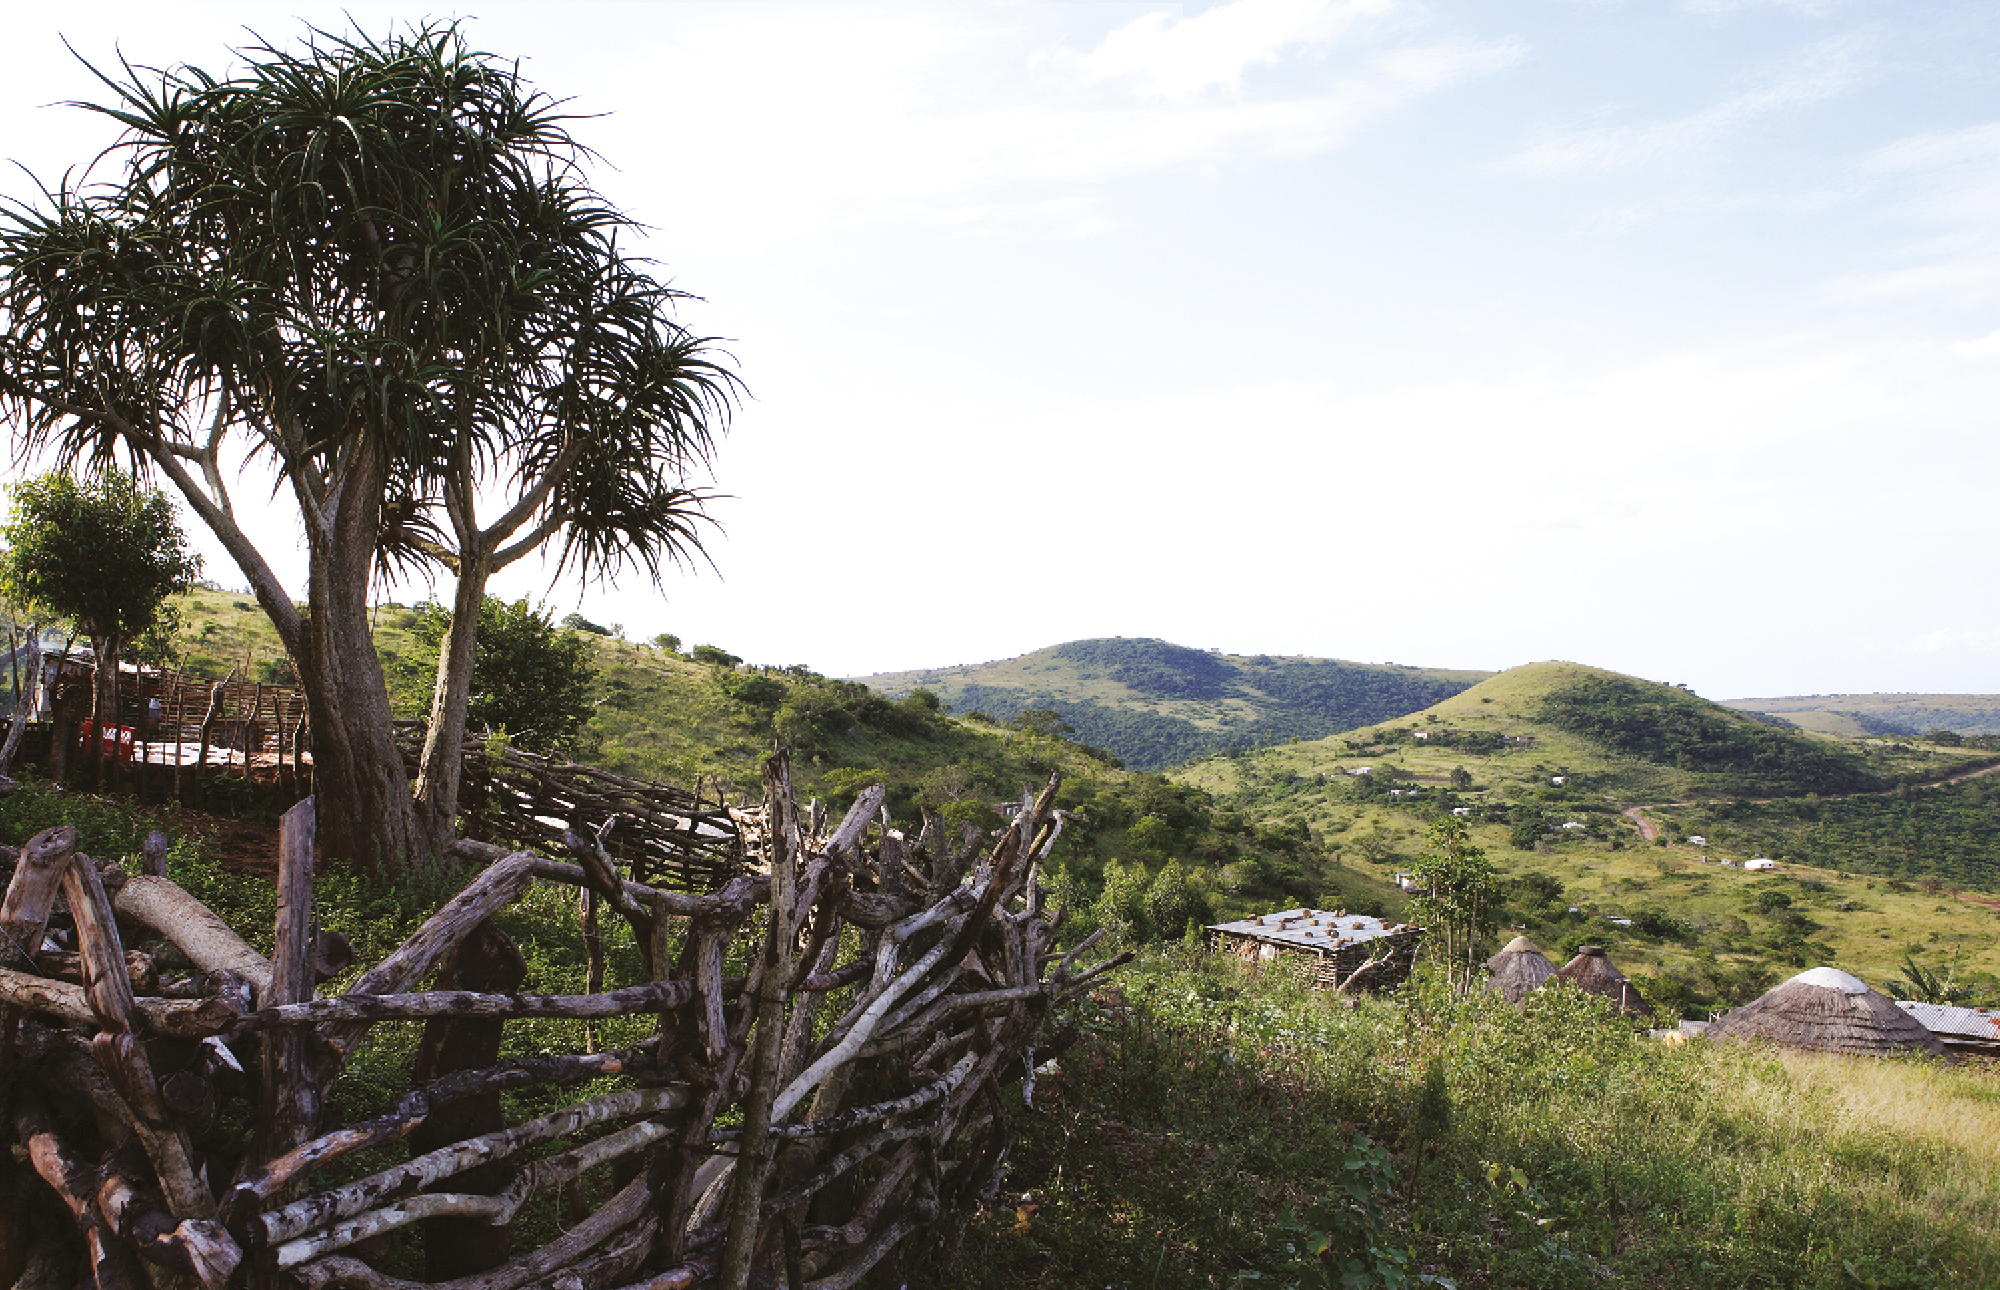 Ghost Mountain Inn encourages guests to get to know the local area, including the Lebombo Mountains and people who live there